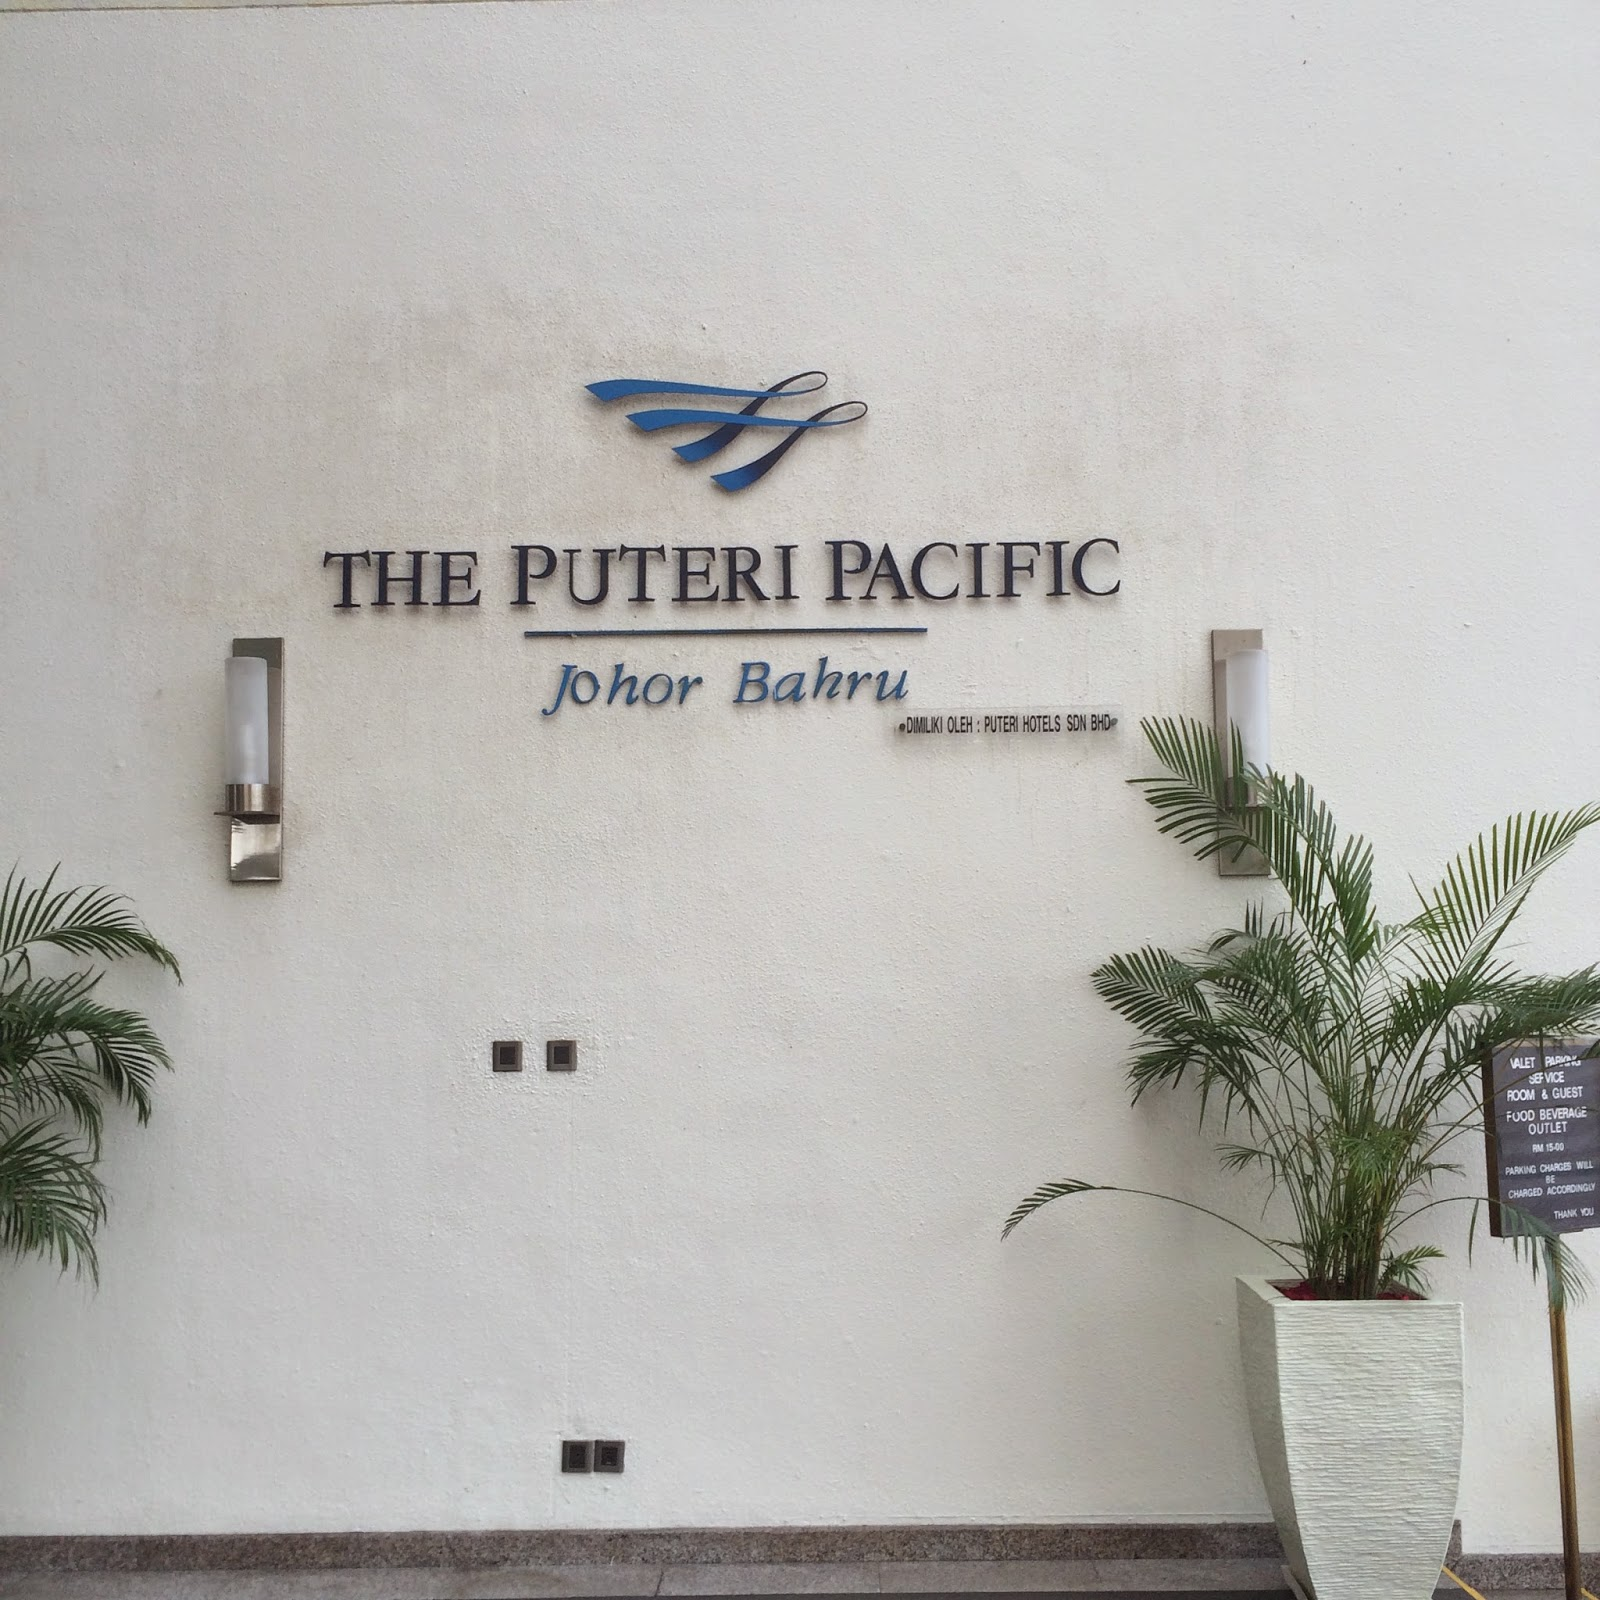 Teo Siew Chin: JB Staycation Part 1: The Puteri Pacific